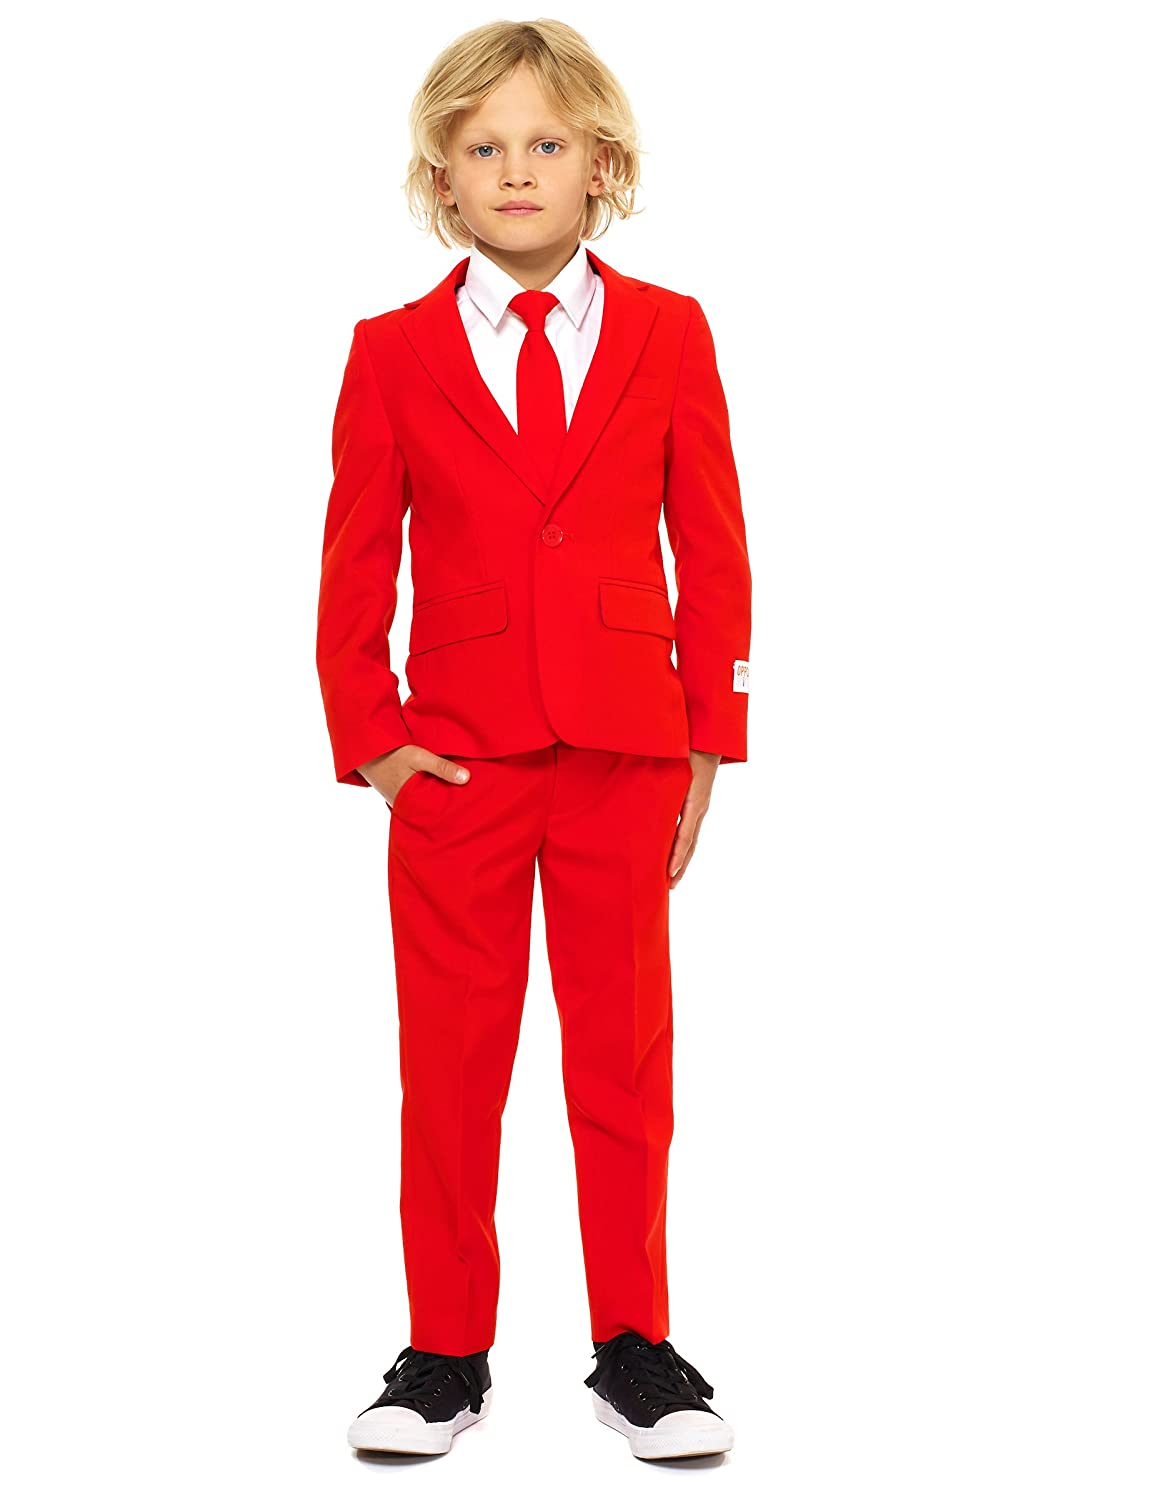 Opposuits Crazy Suits for Boys in Different Prints – Comes with Jacket, Pants and Tie In Funny Designs rot Devil